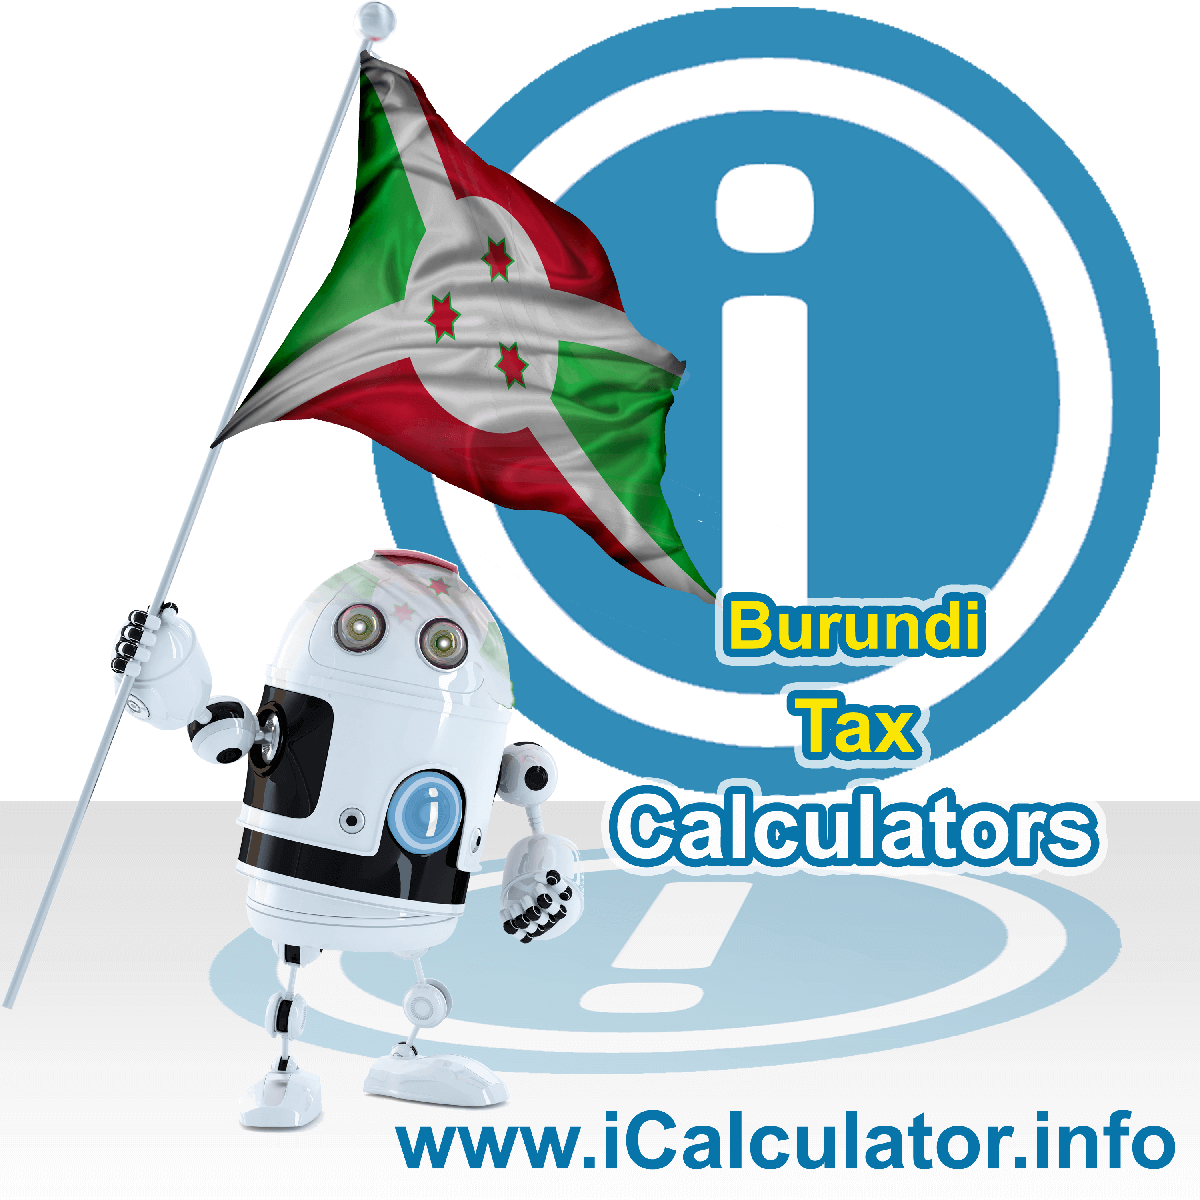 Burundi Tax Calculators. This image shows the Burundi flag and information relating to the tax formula for the Burundi Tax Calculators